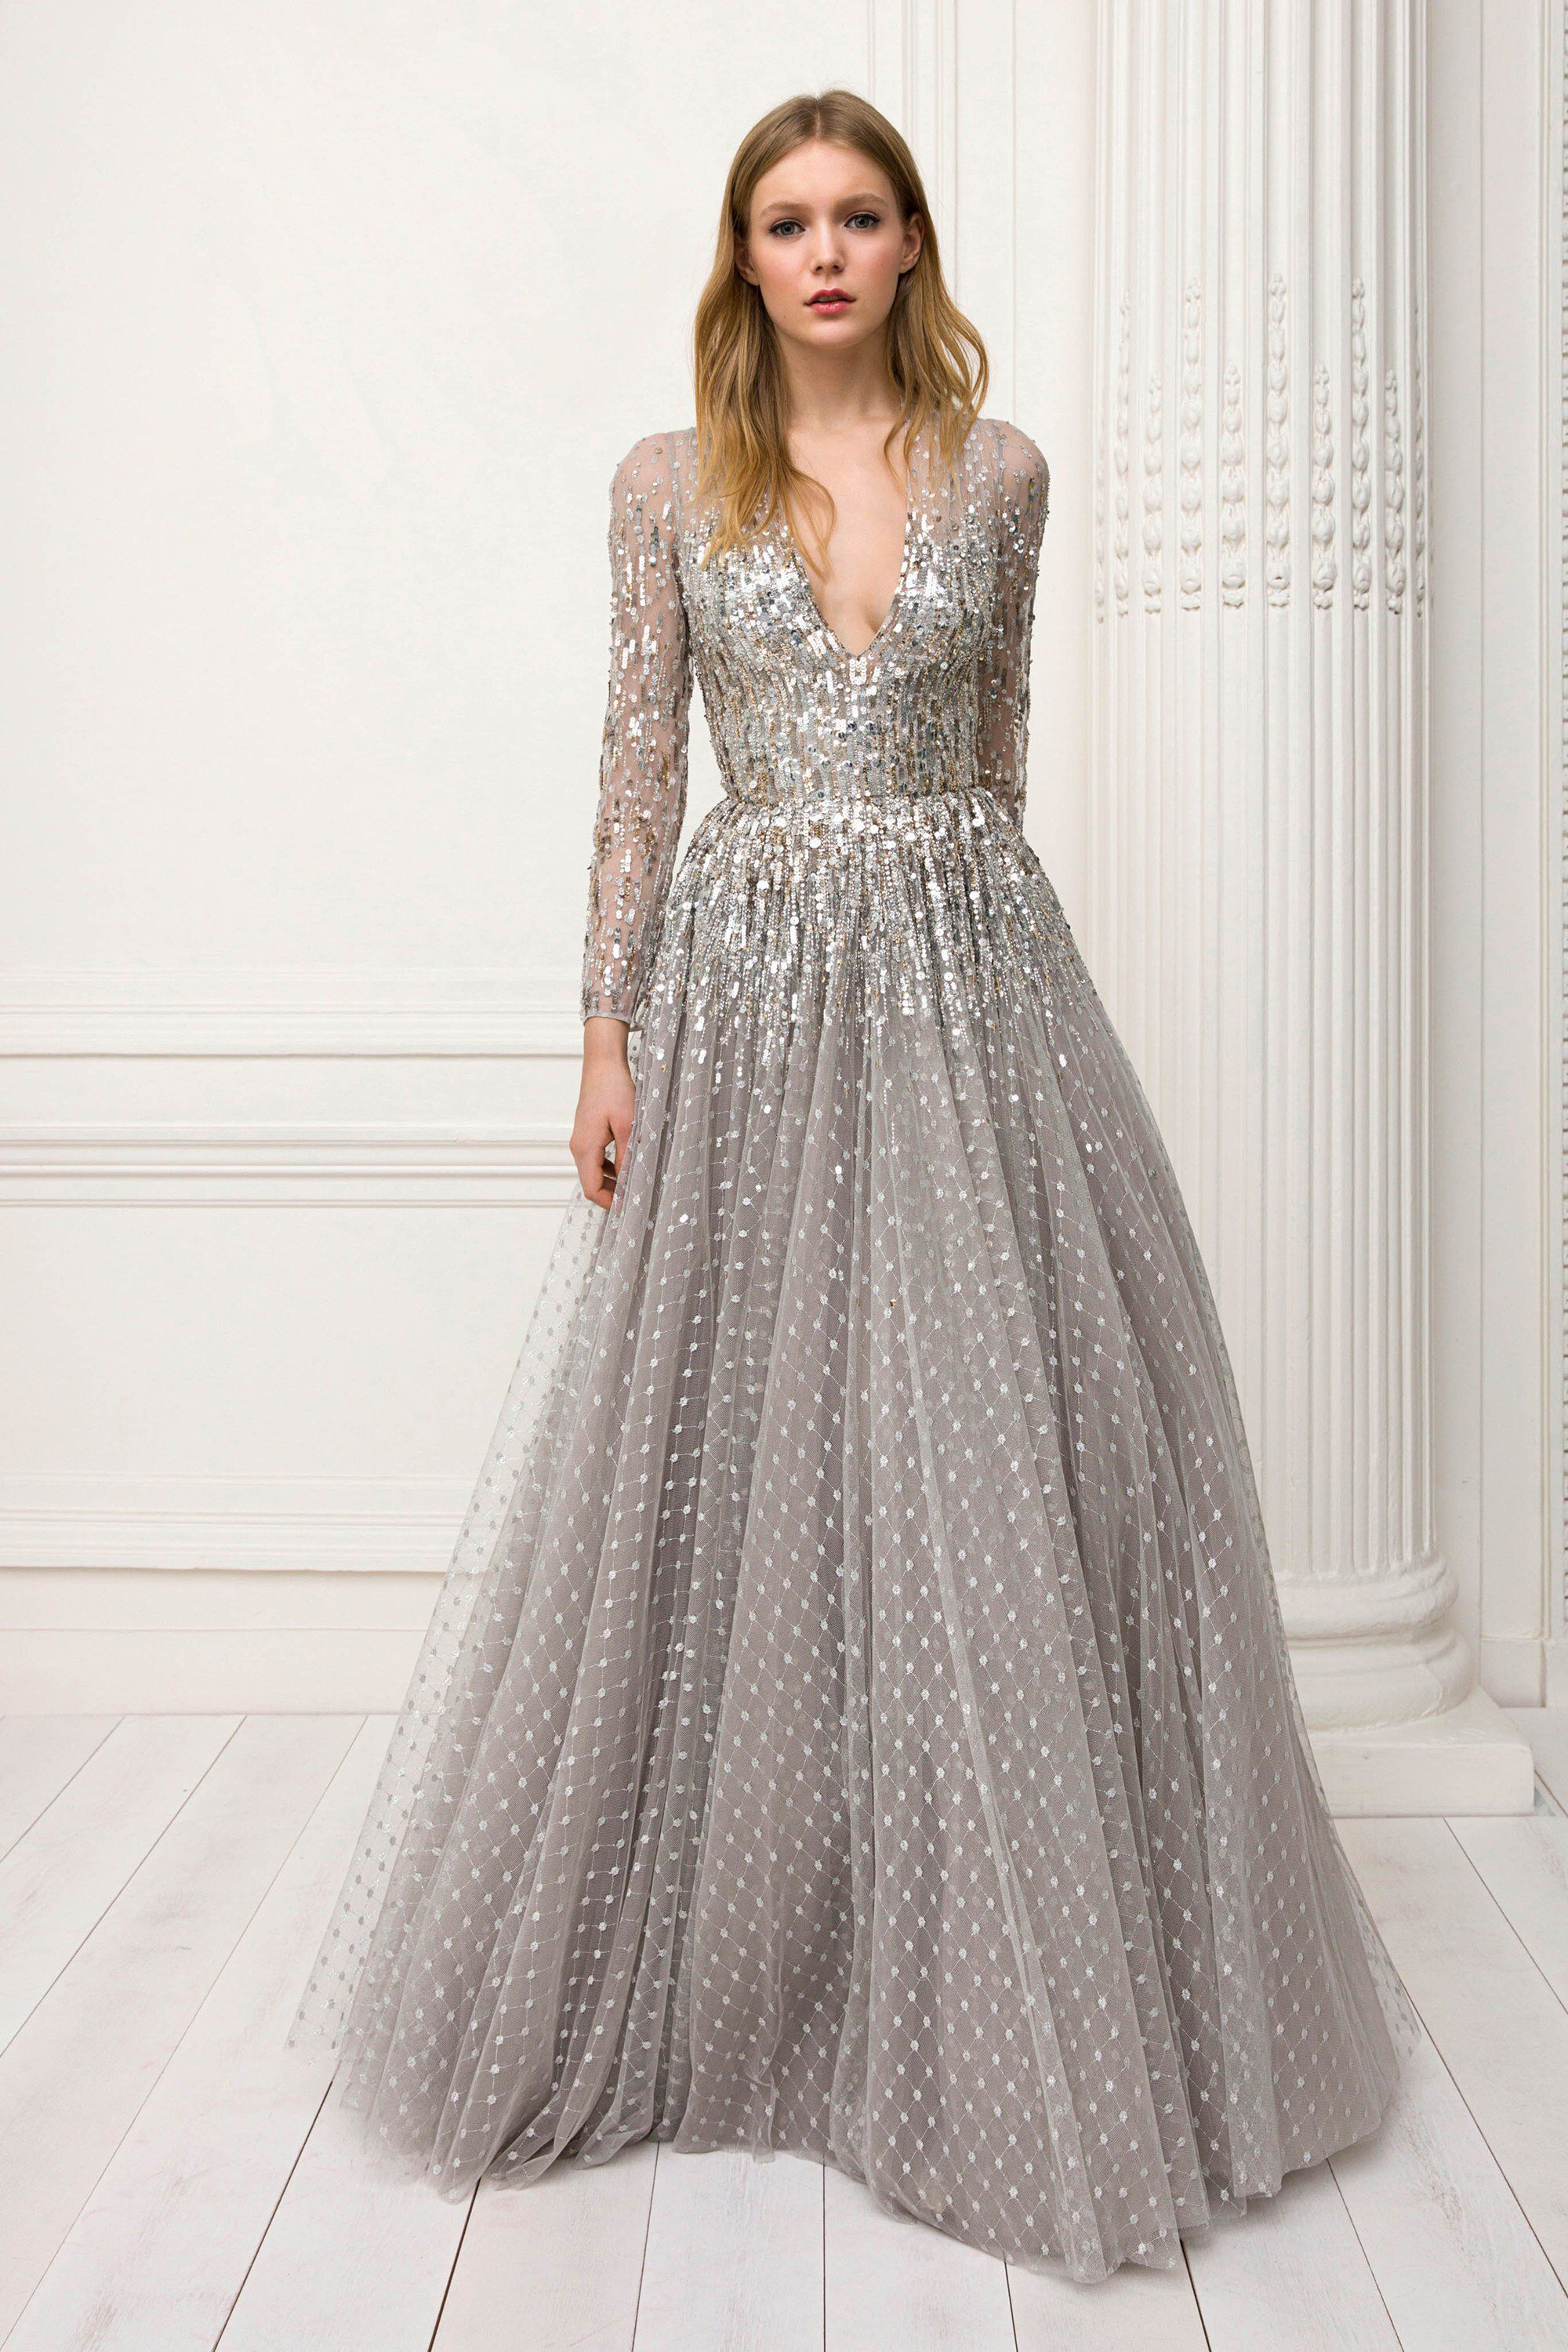 Abiti Da Cerimonia Jenny Packham 2018.Jenny Packham Pre Fall 2018 I M Obsessed With The Grey Gown With